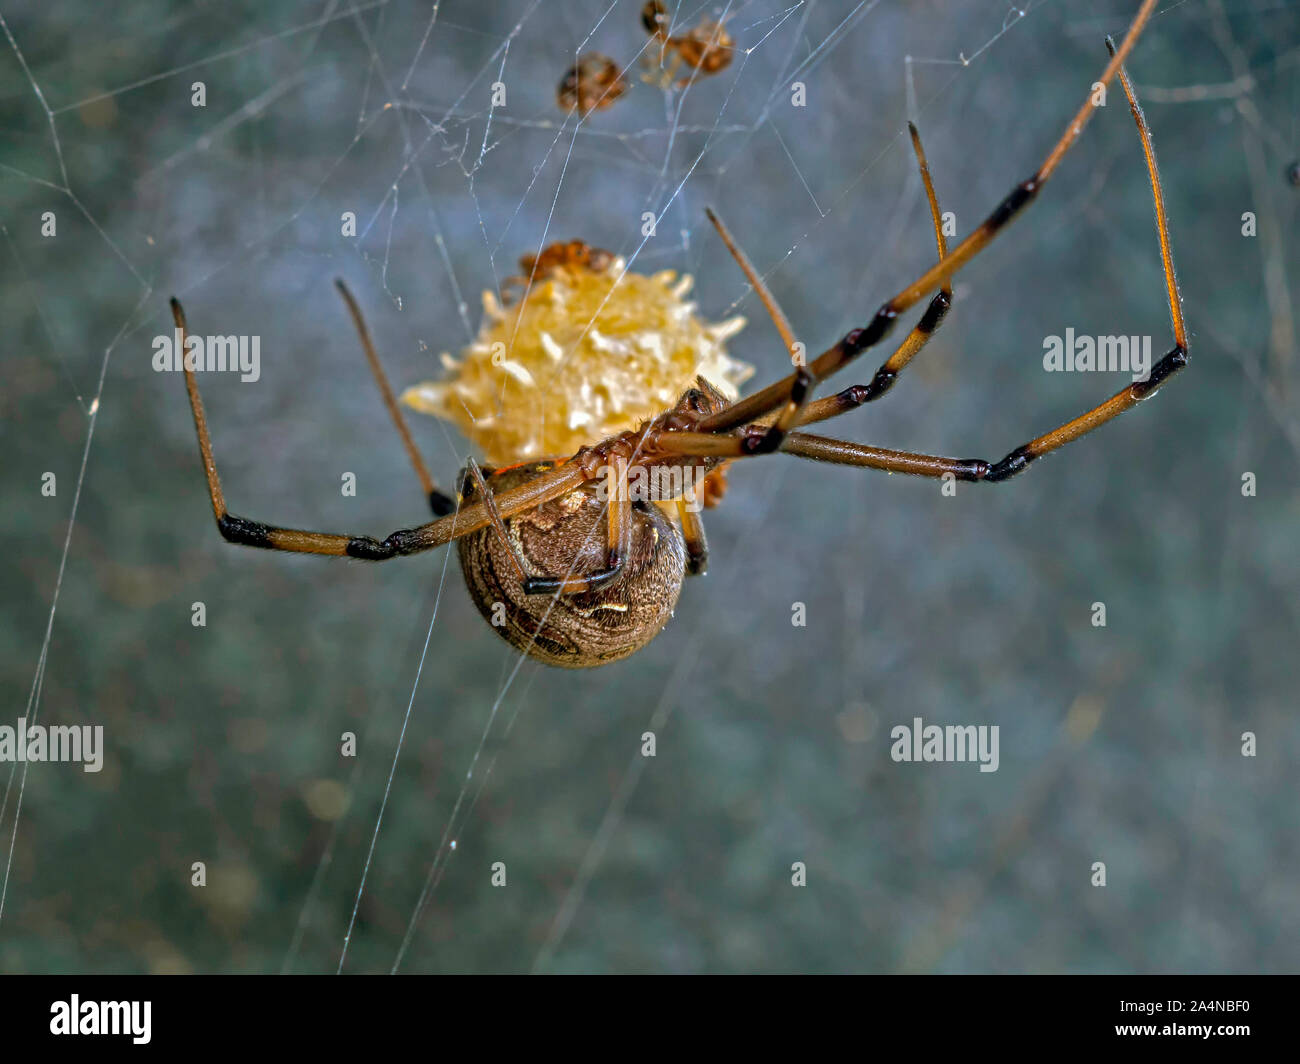 macro-shot-of-a-female-brown-widow-spider-latrodectus-geometricus-hanging-from-its-web-with-identifying-spiked-egg-sack-visible-in-background-2A4NBF0.jpg